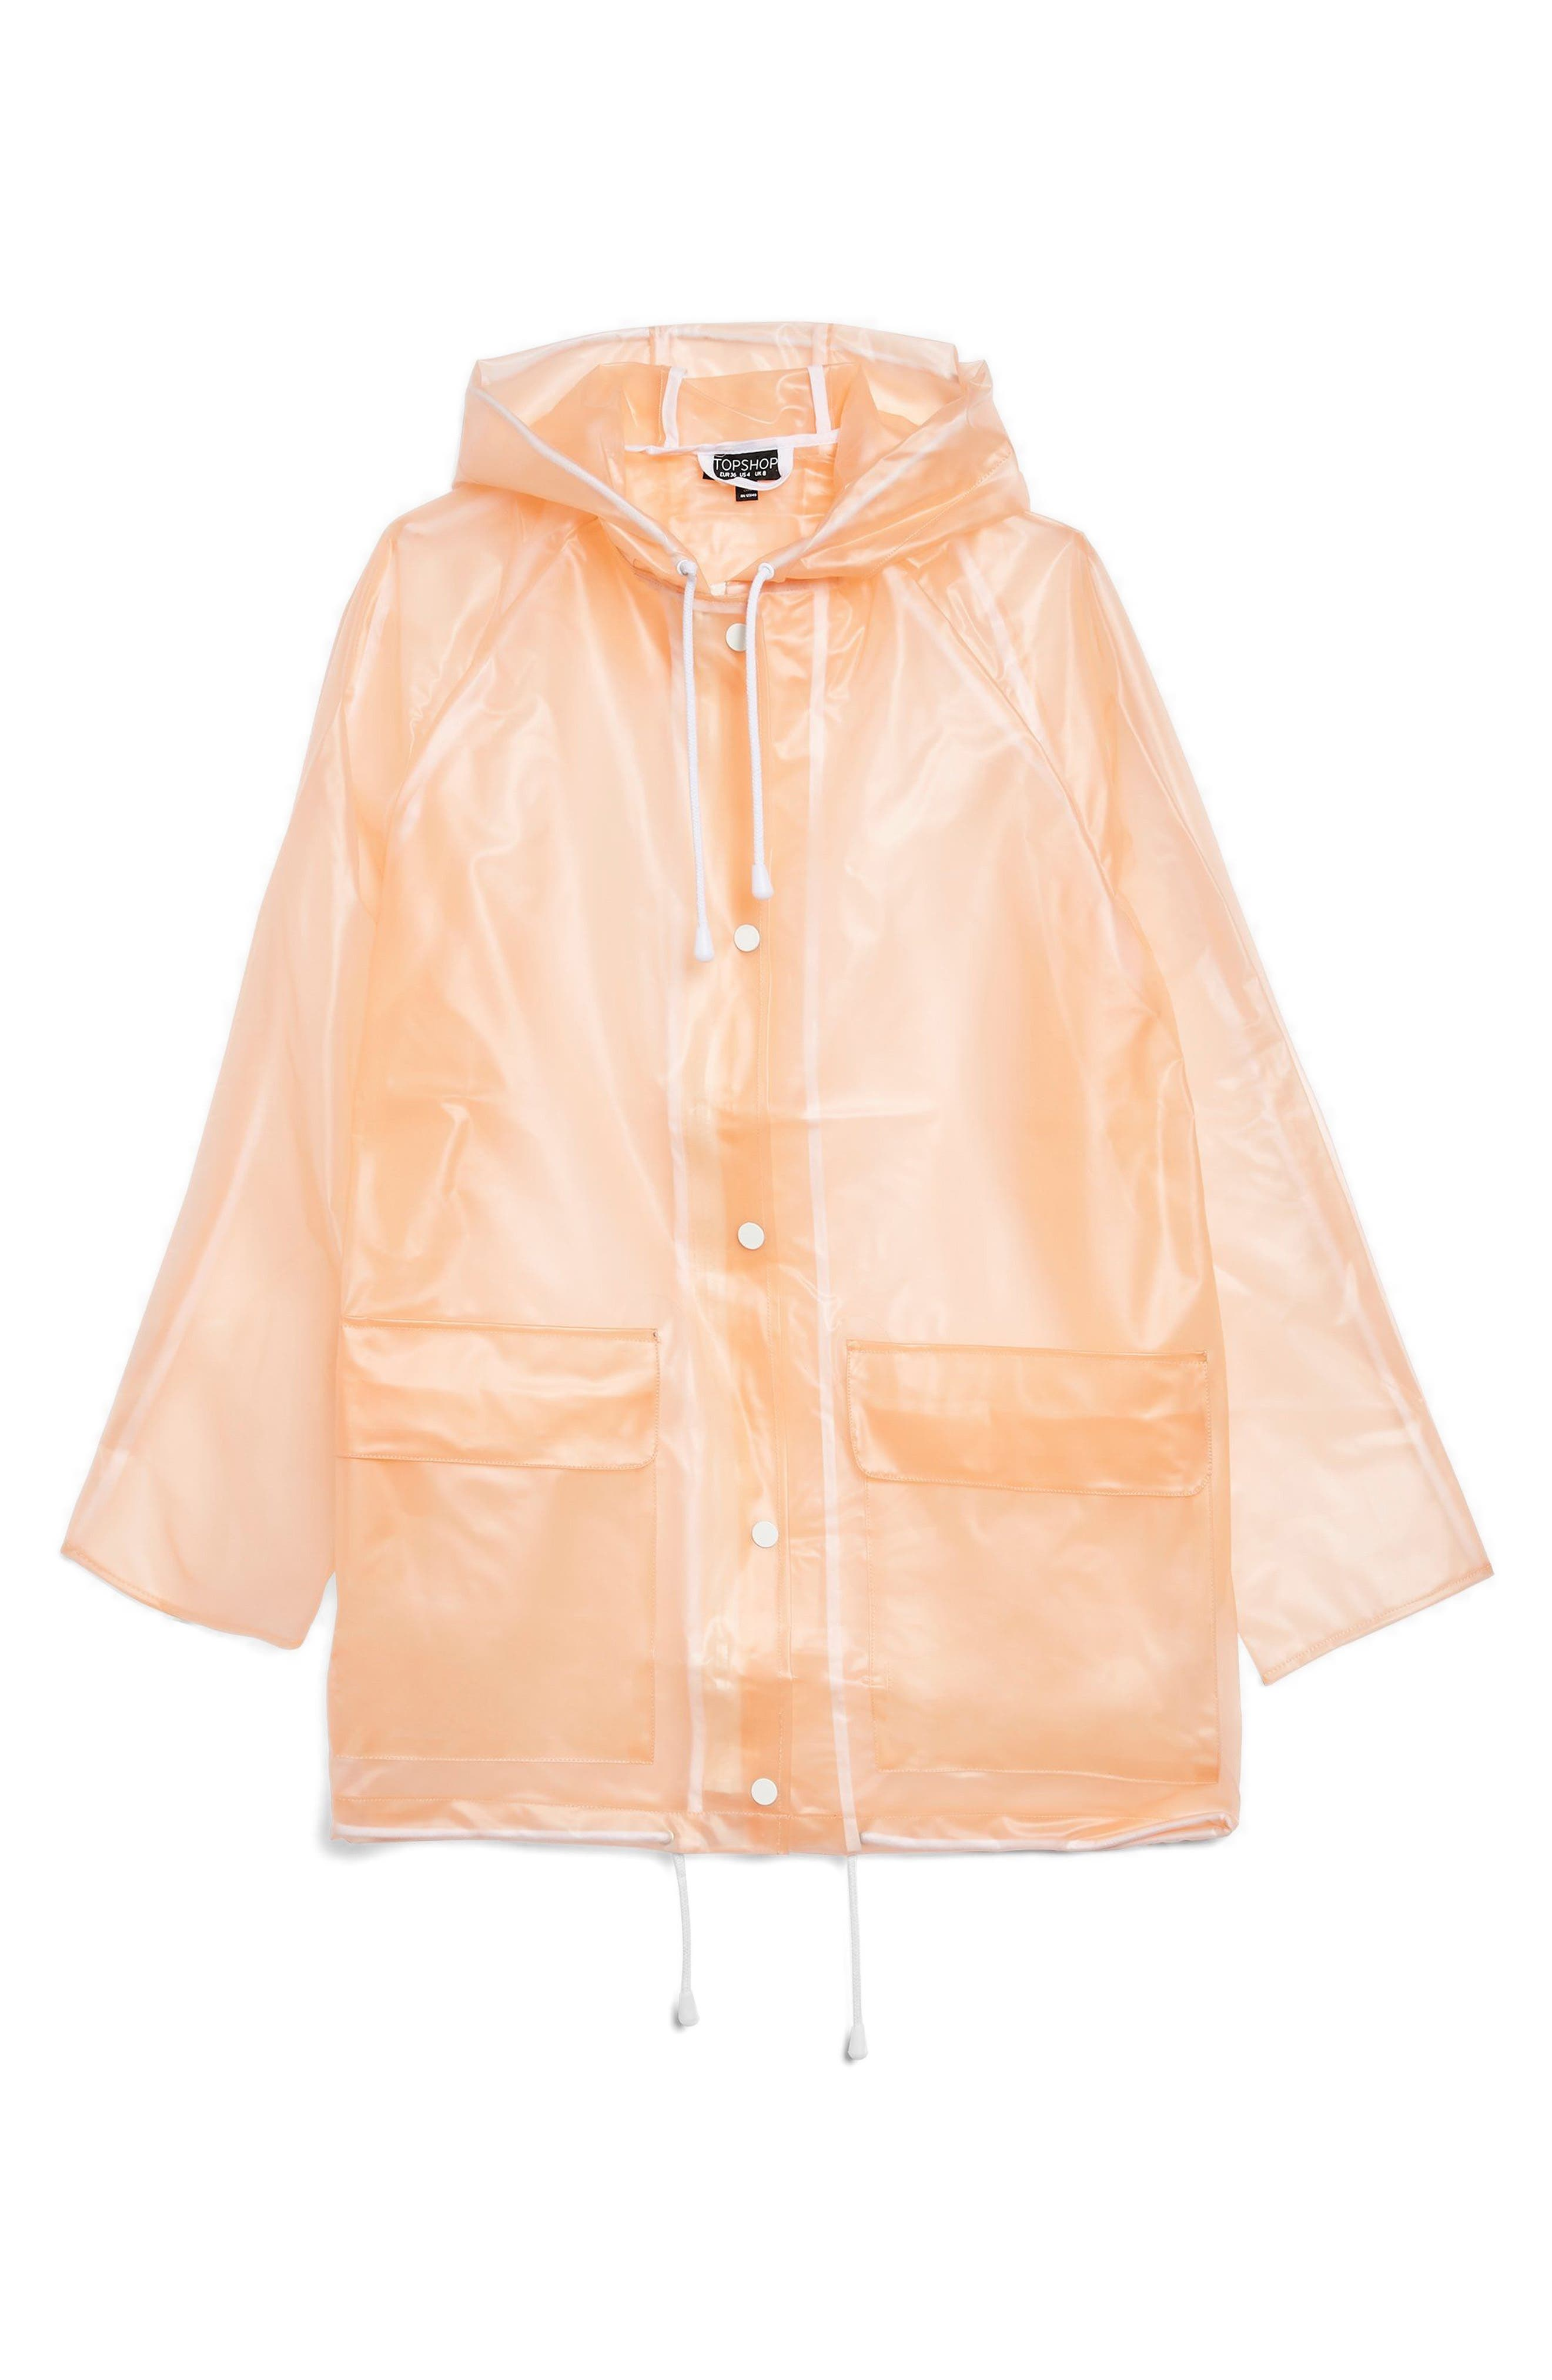 Frosted Marge Mac Rain Jacket,                             Alternate thumbnail 4, color,                             Peach Multi